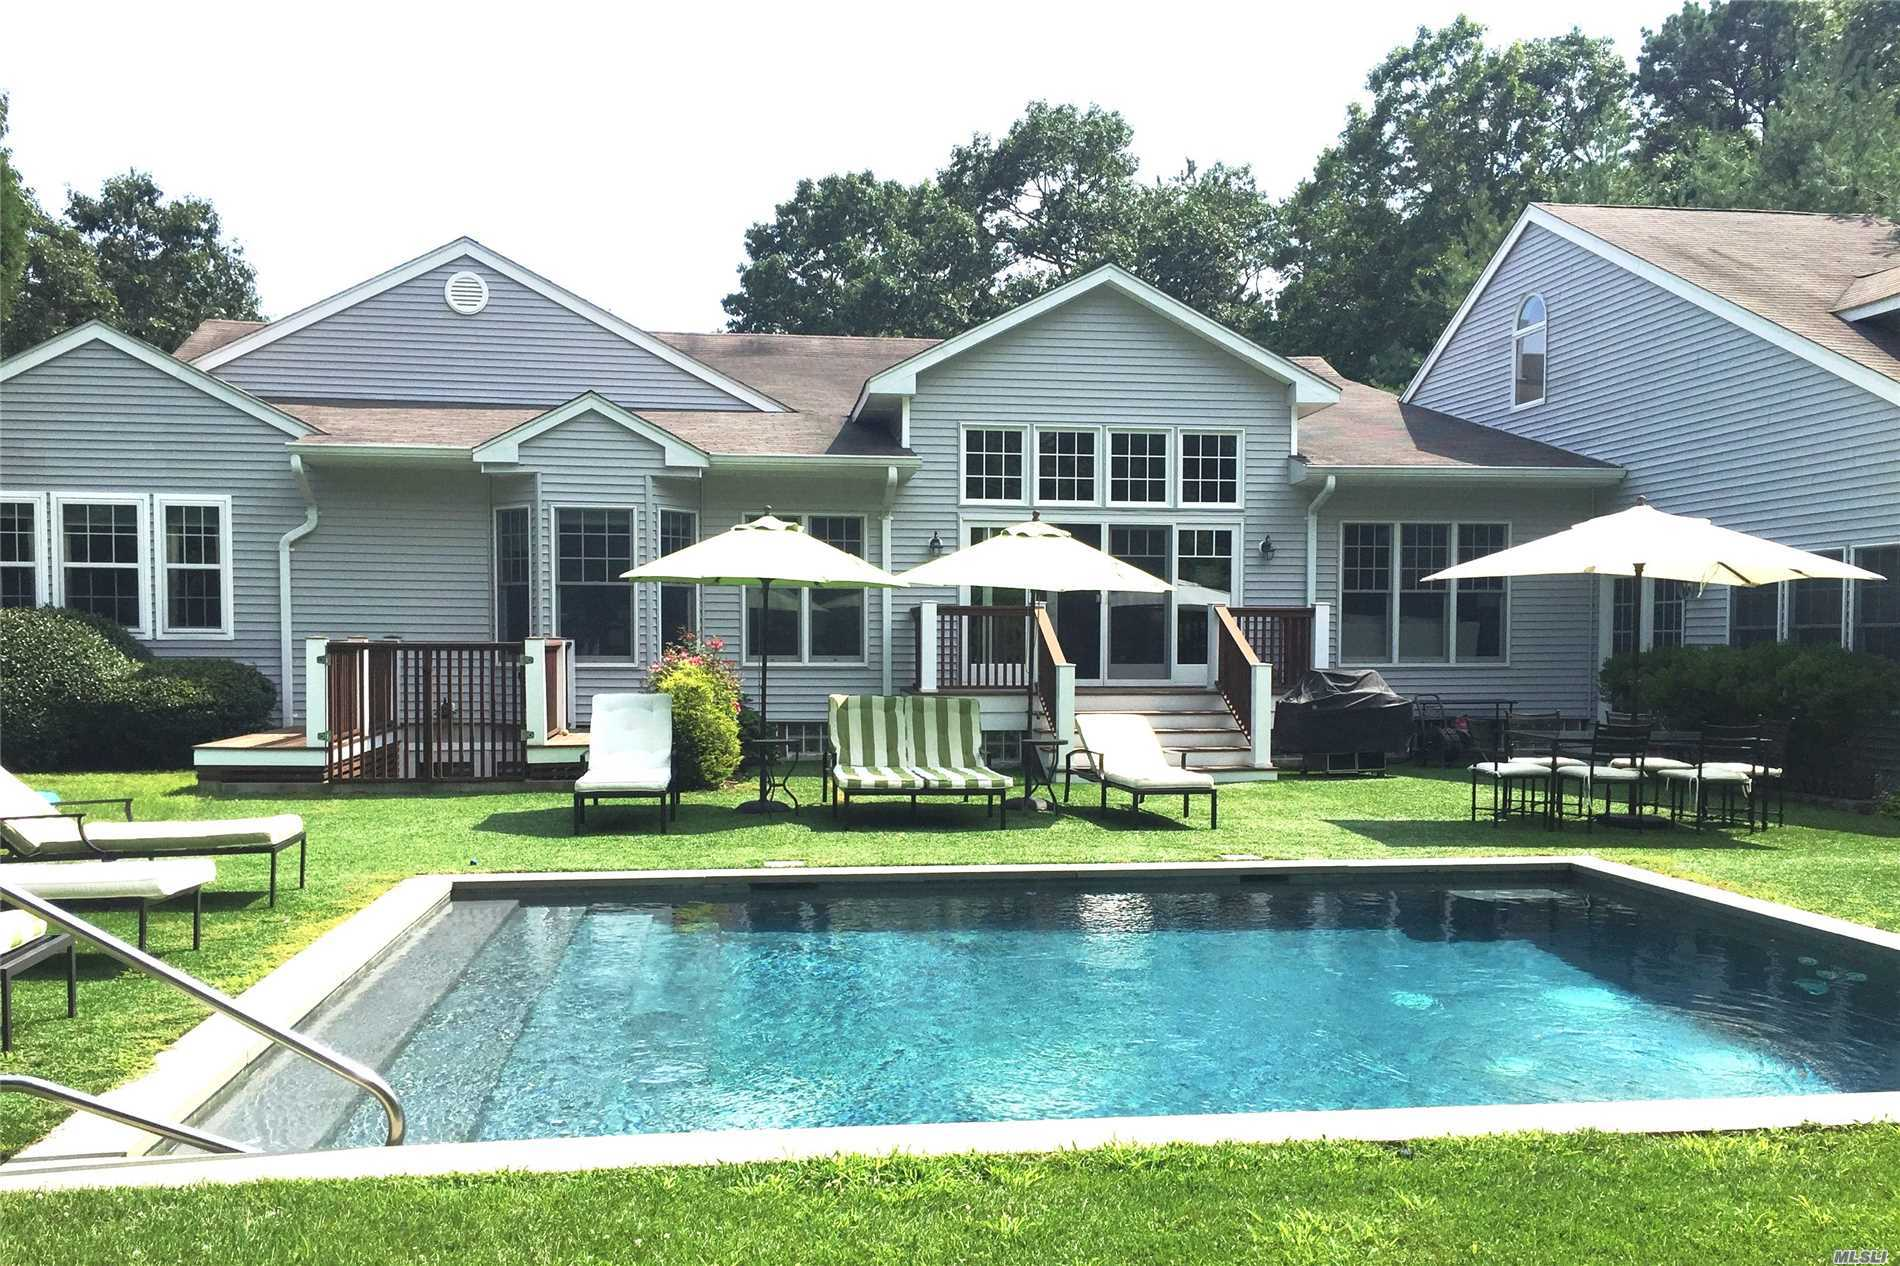 Photo of home for sale at 1 Jeffrey Ln, East Quogue NY